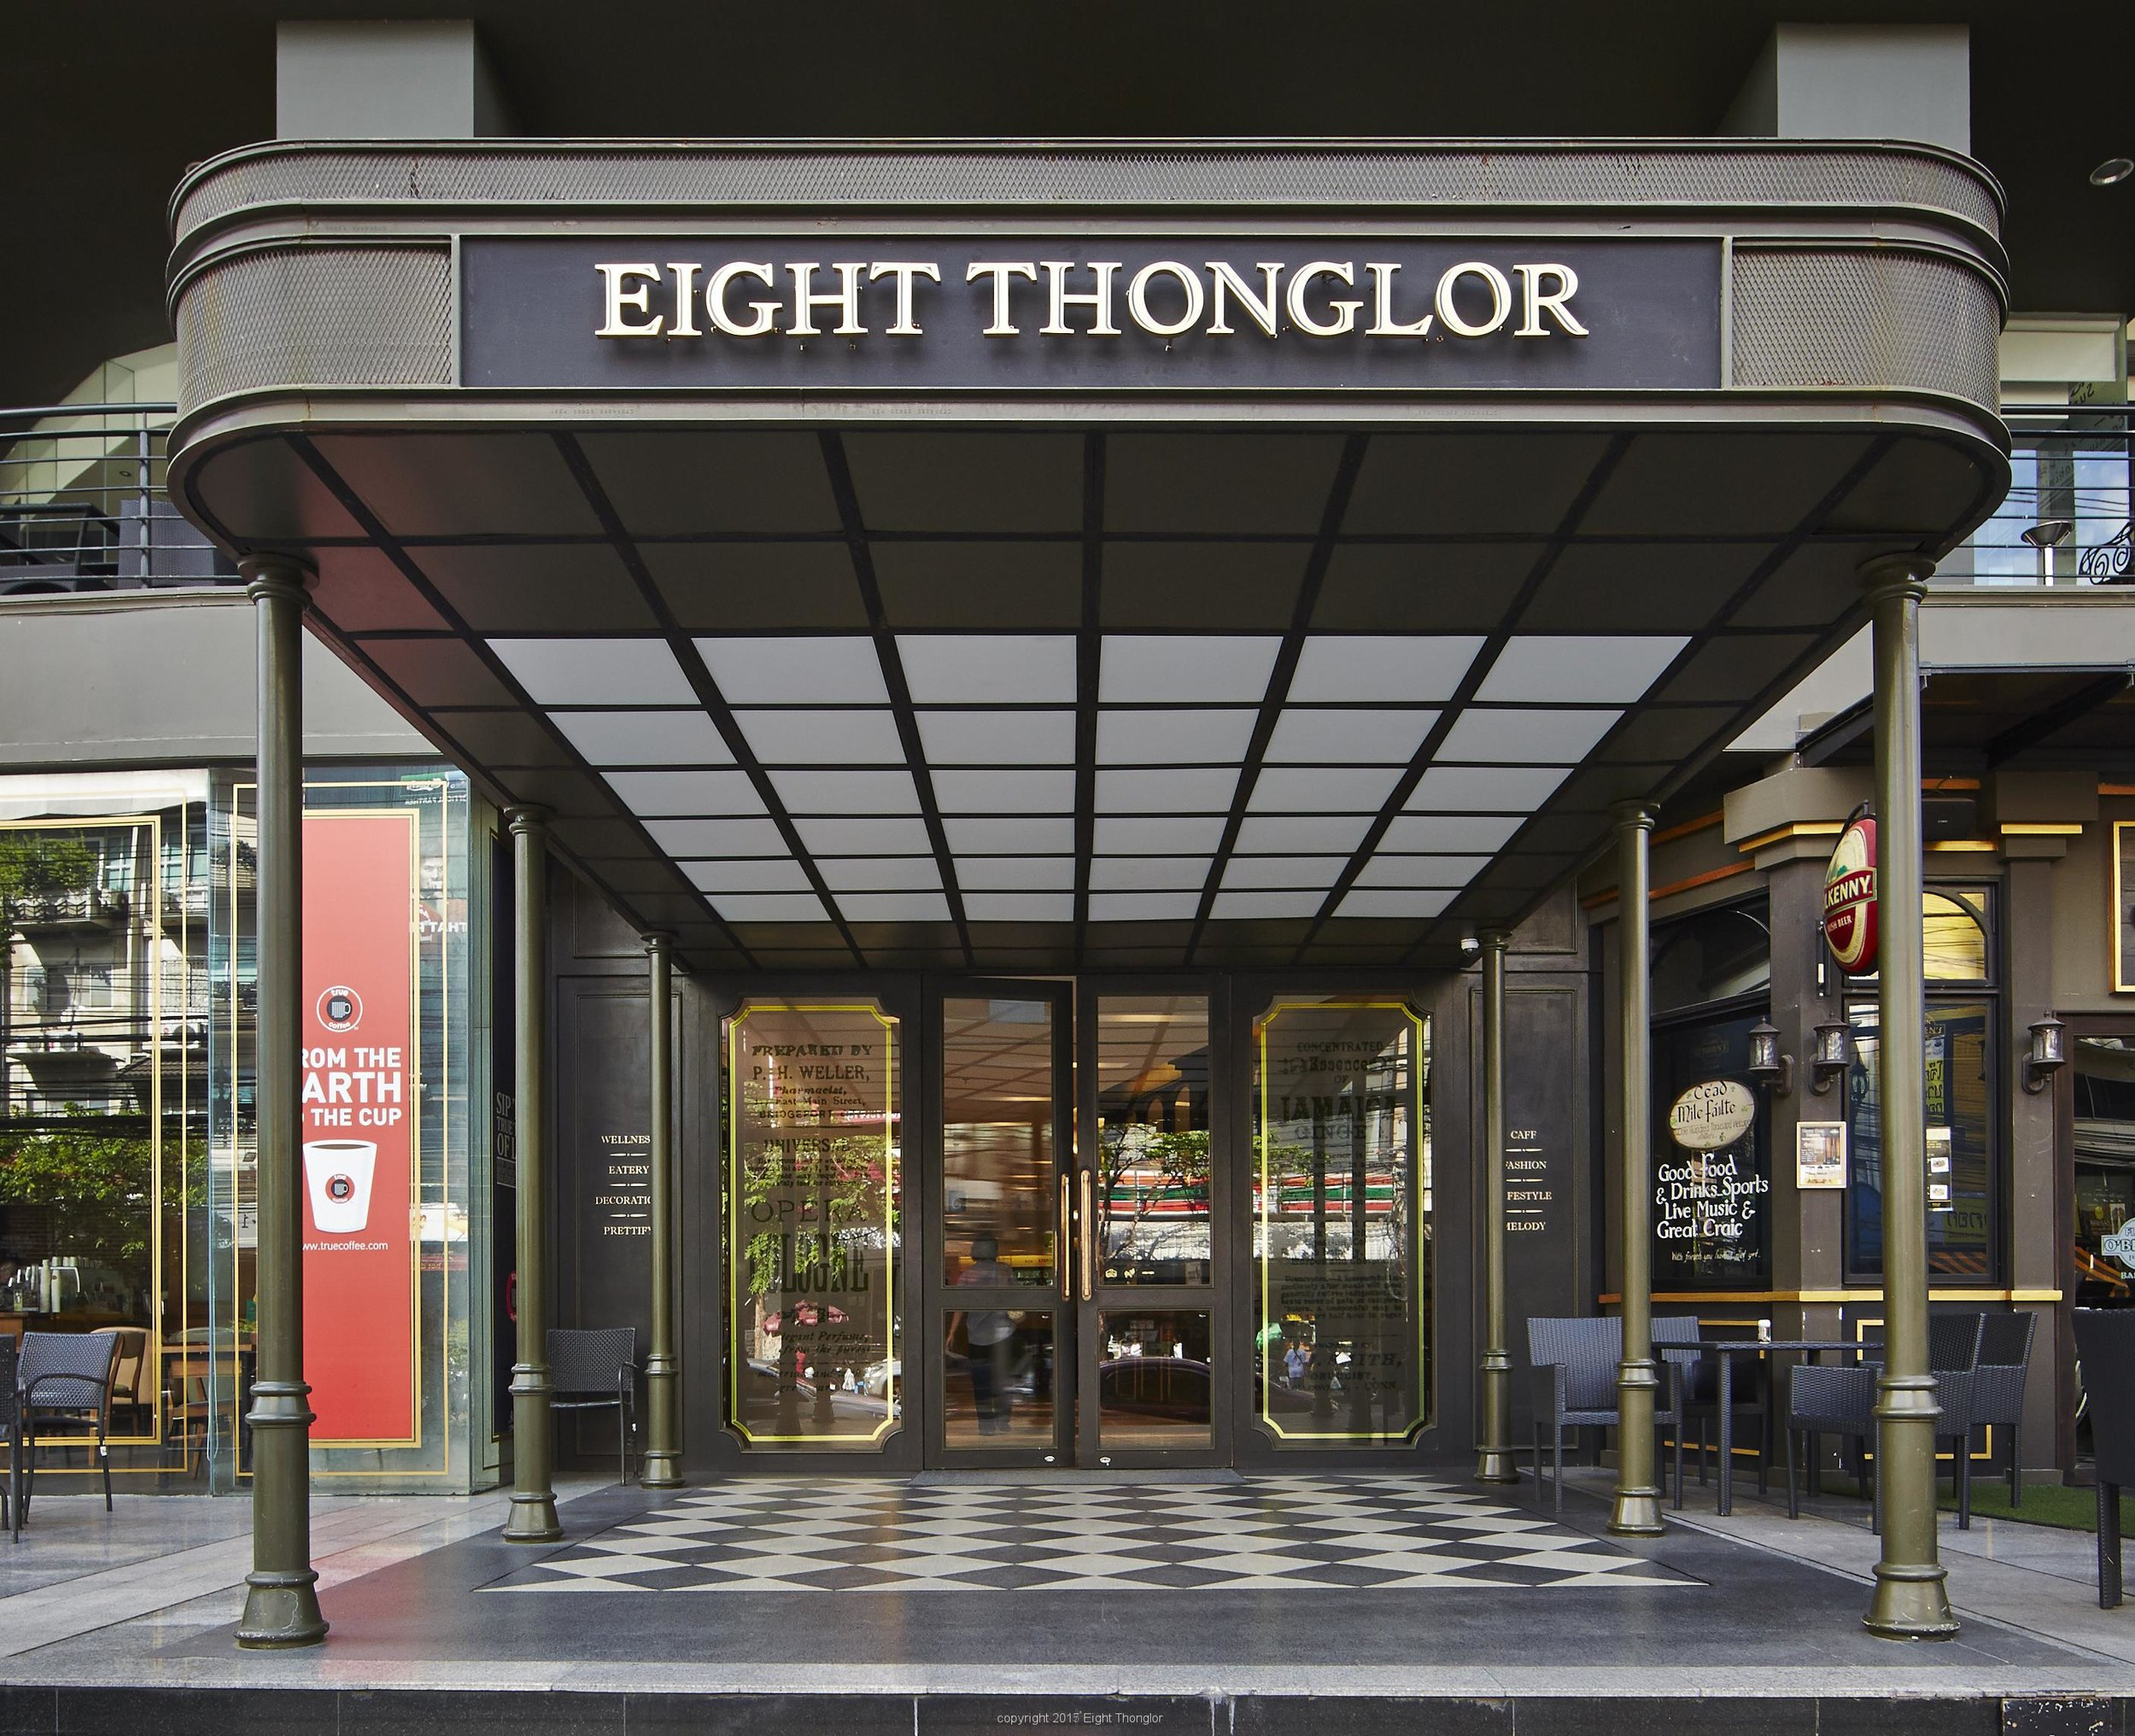 Tempo Thonglor was later renamed Ei8ht Thonglor due to a fortuitous change in their address, where they are able to take advantage of the double digit in their new lot number, 88/36.